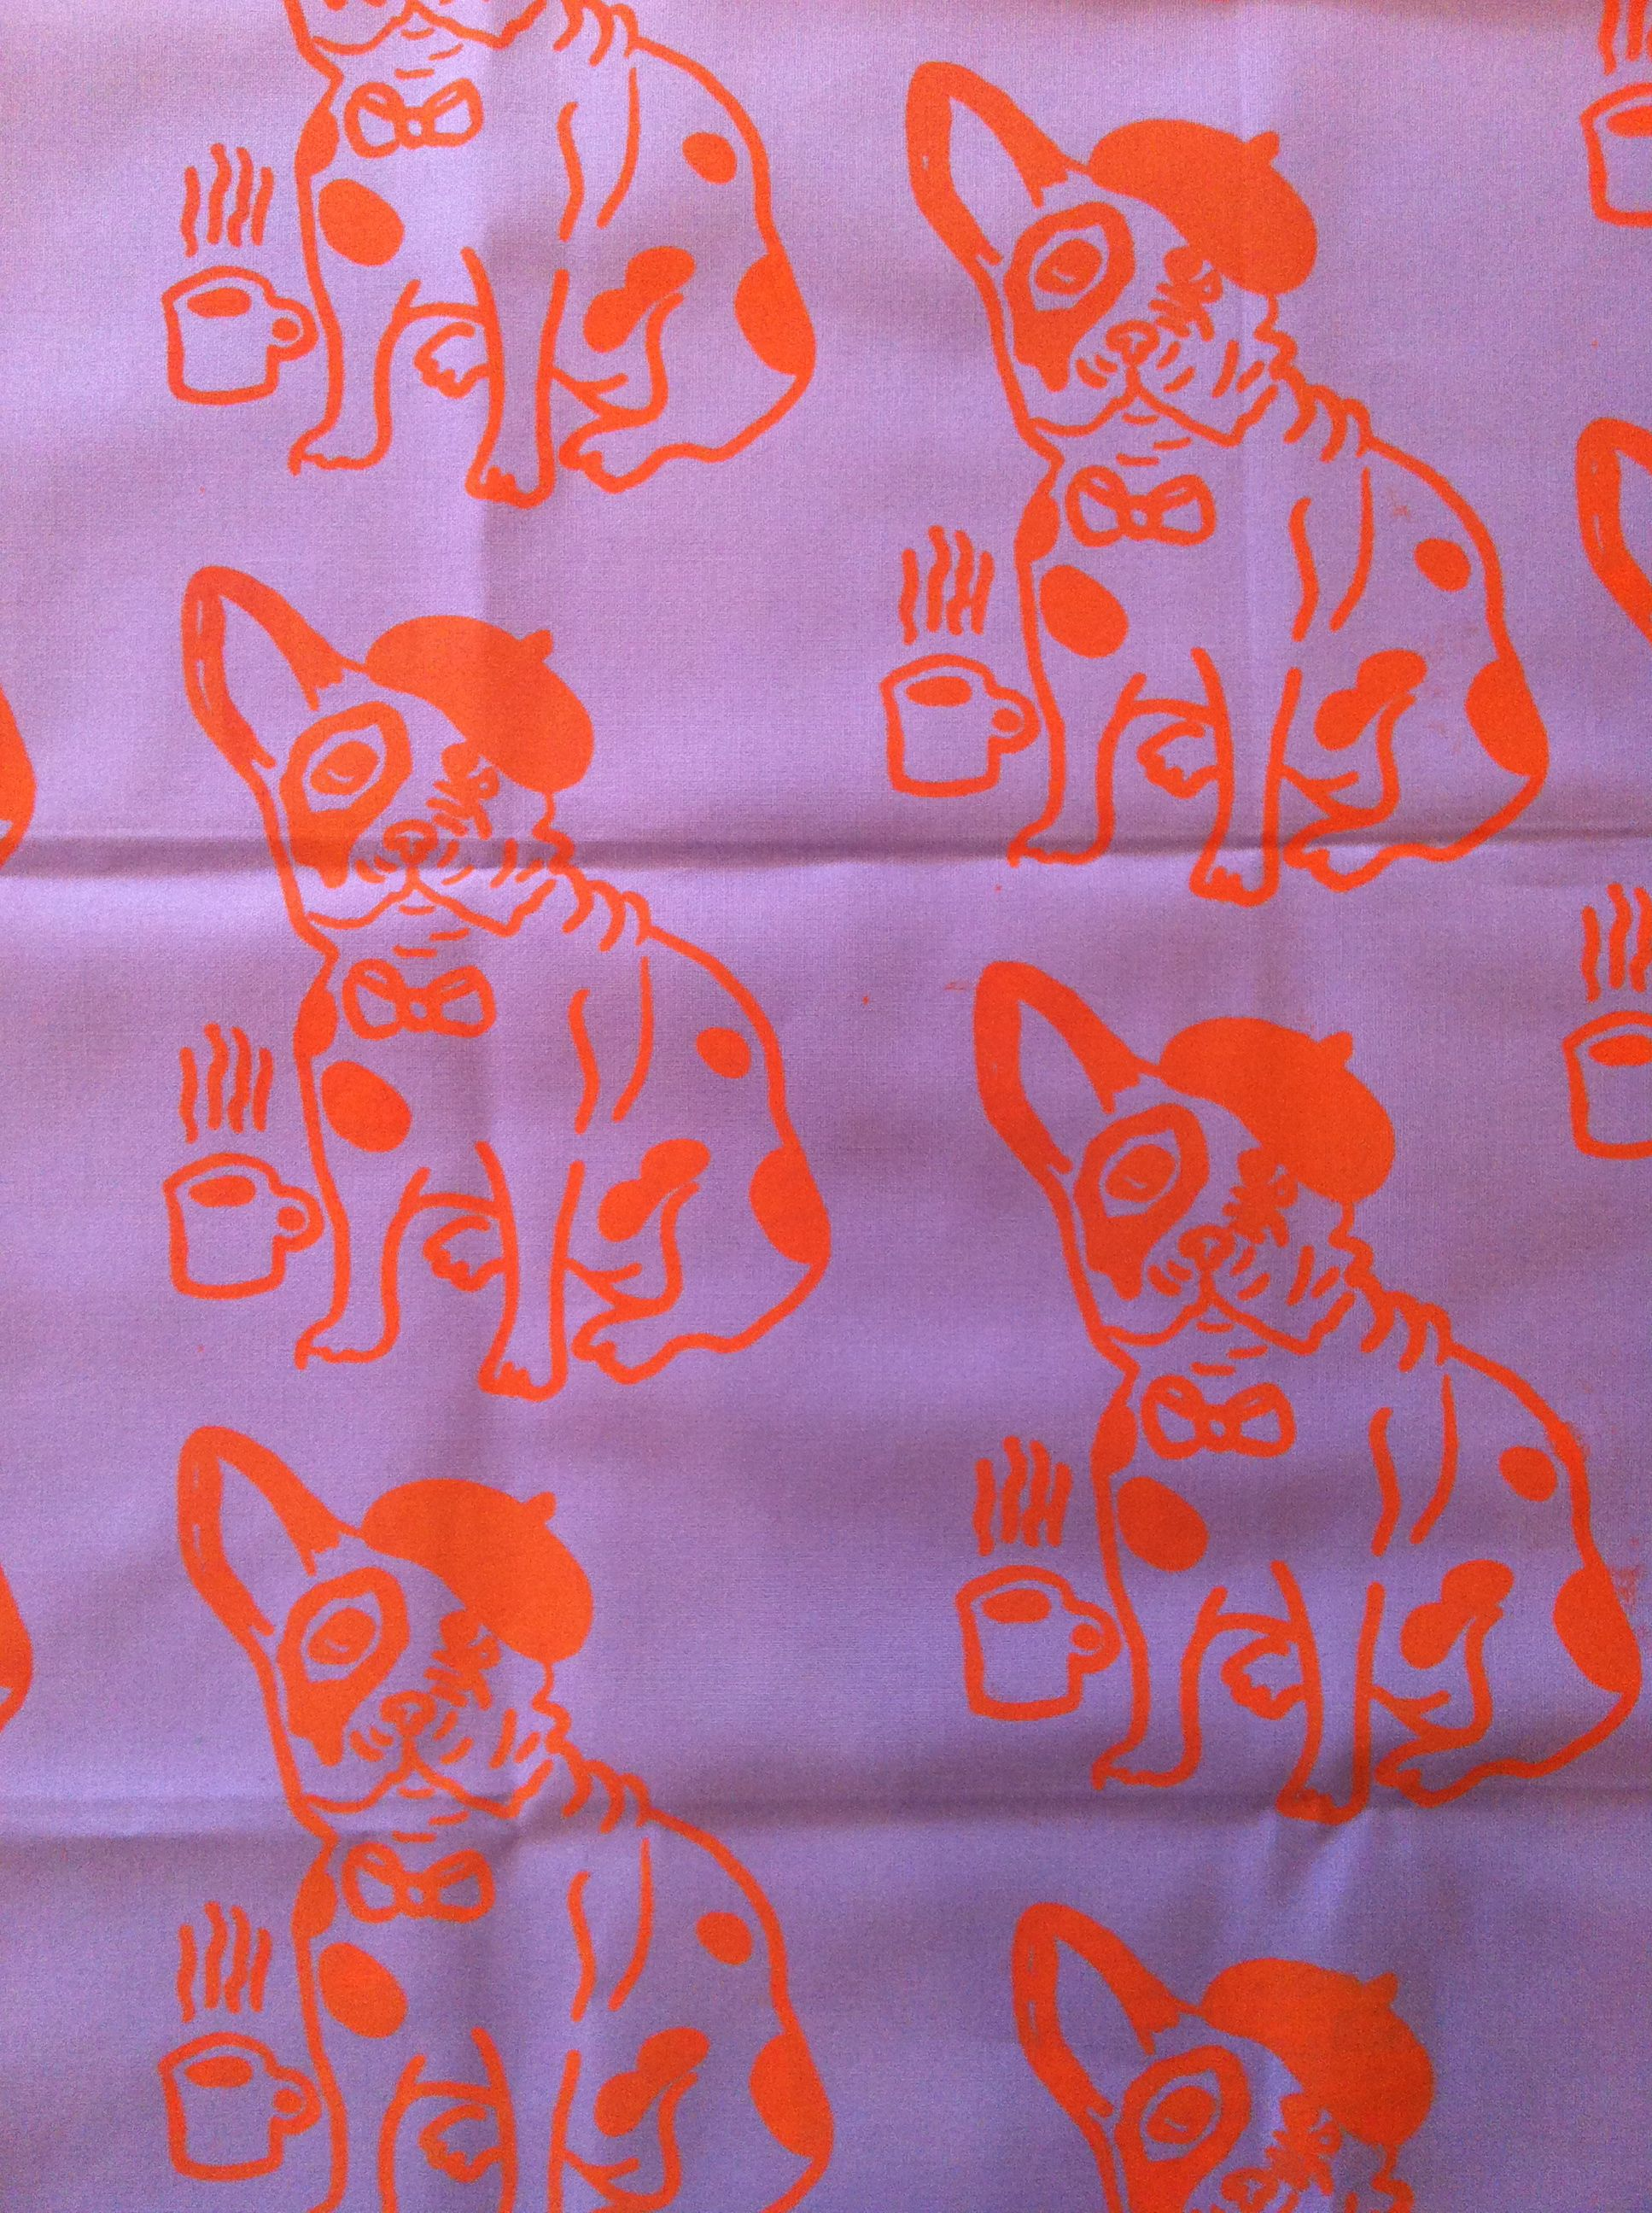 Fabric I screen-printed myself. I drew the design thinking of the little French bulldogs I walk.